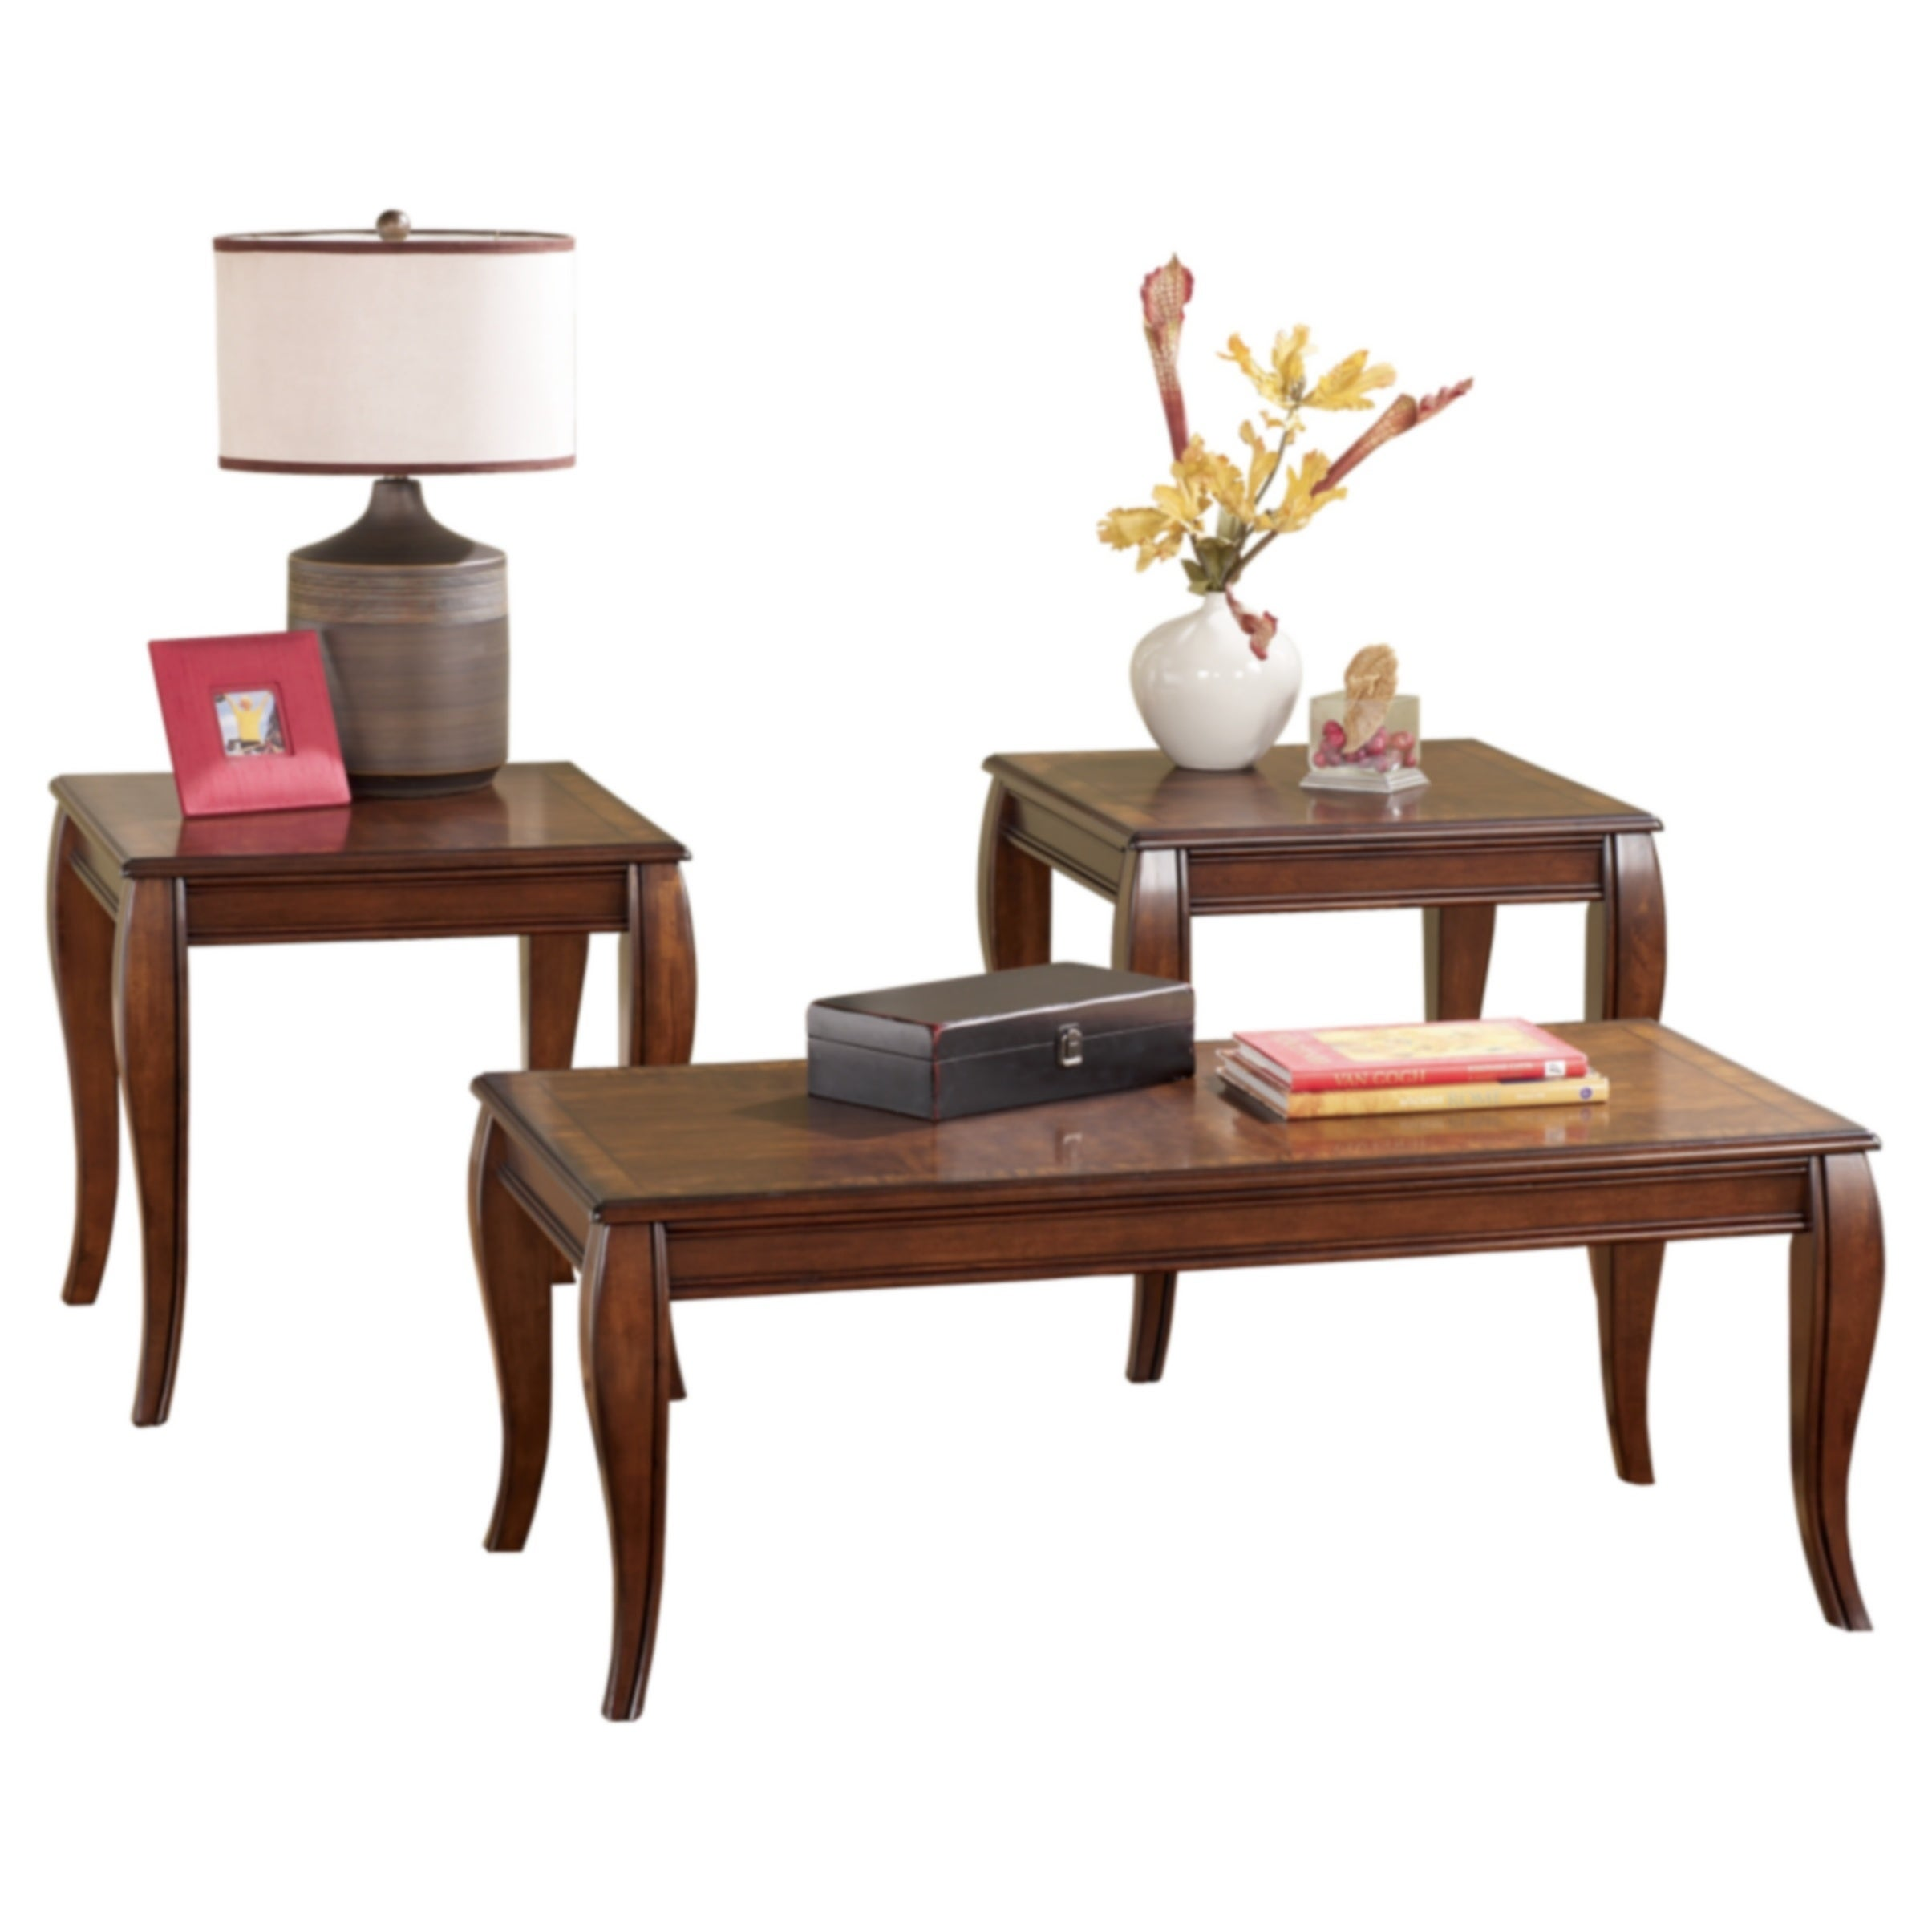 Signature Designs By Ashley, Mattie Cherry 3 Piece Occasional Table Set